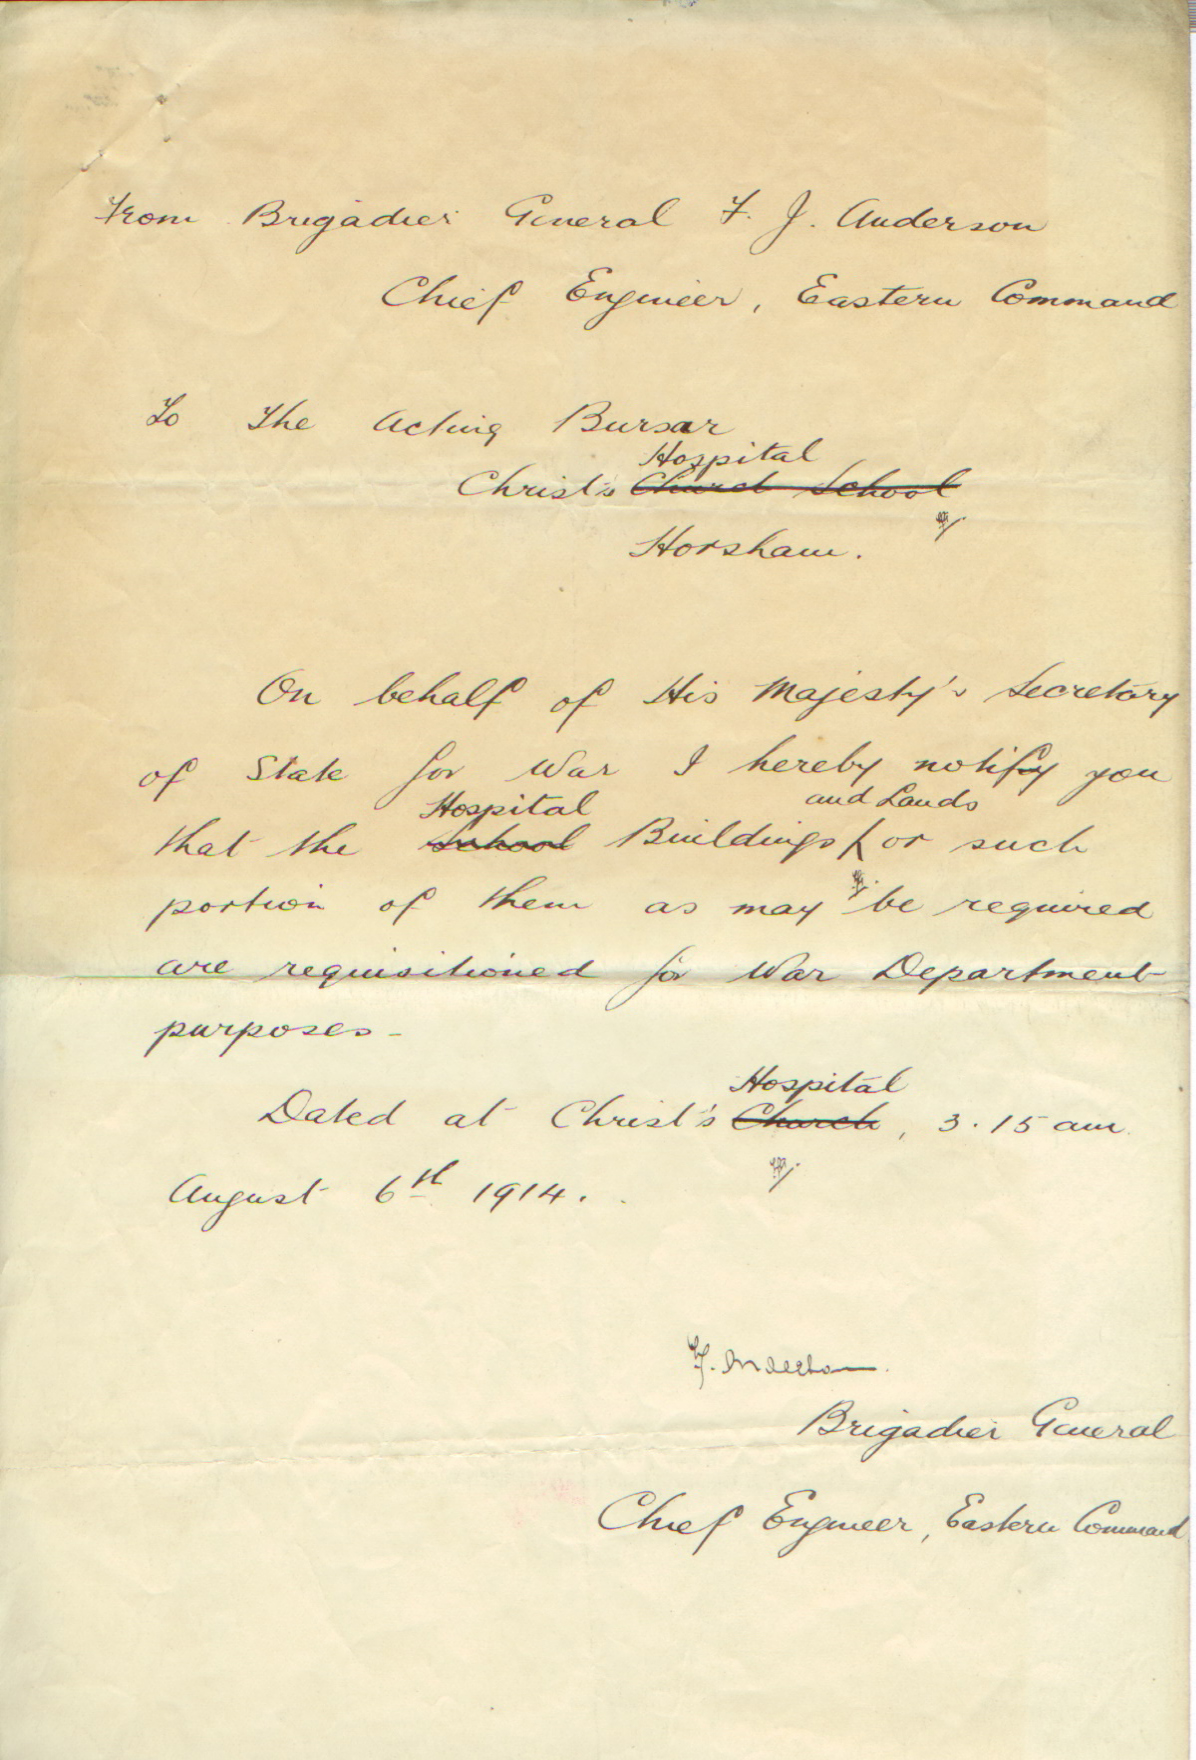 CH requisition 6 August 1914